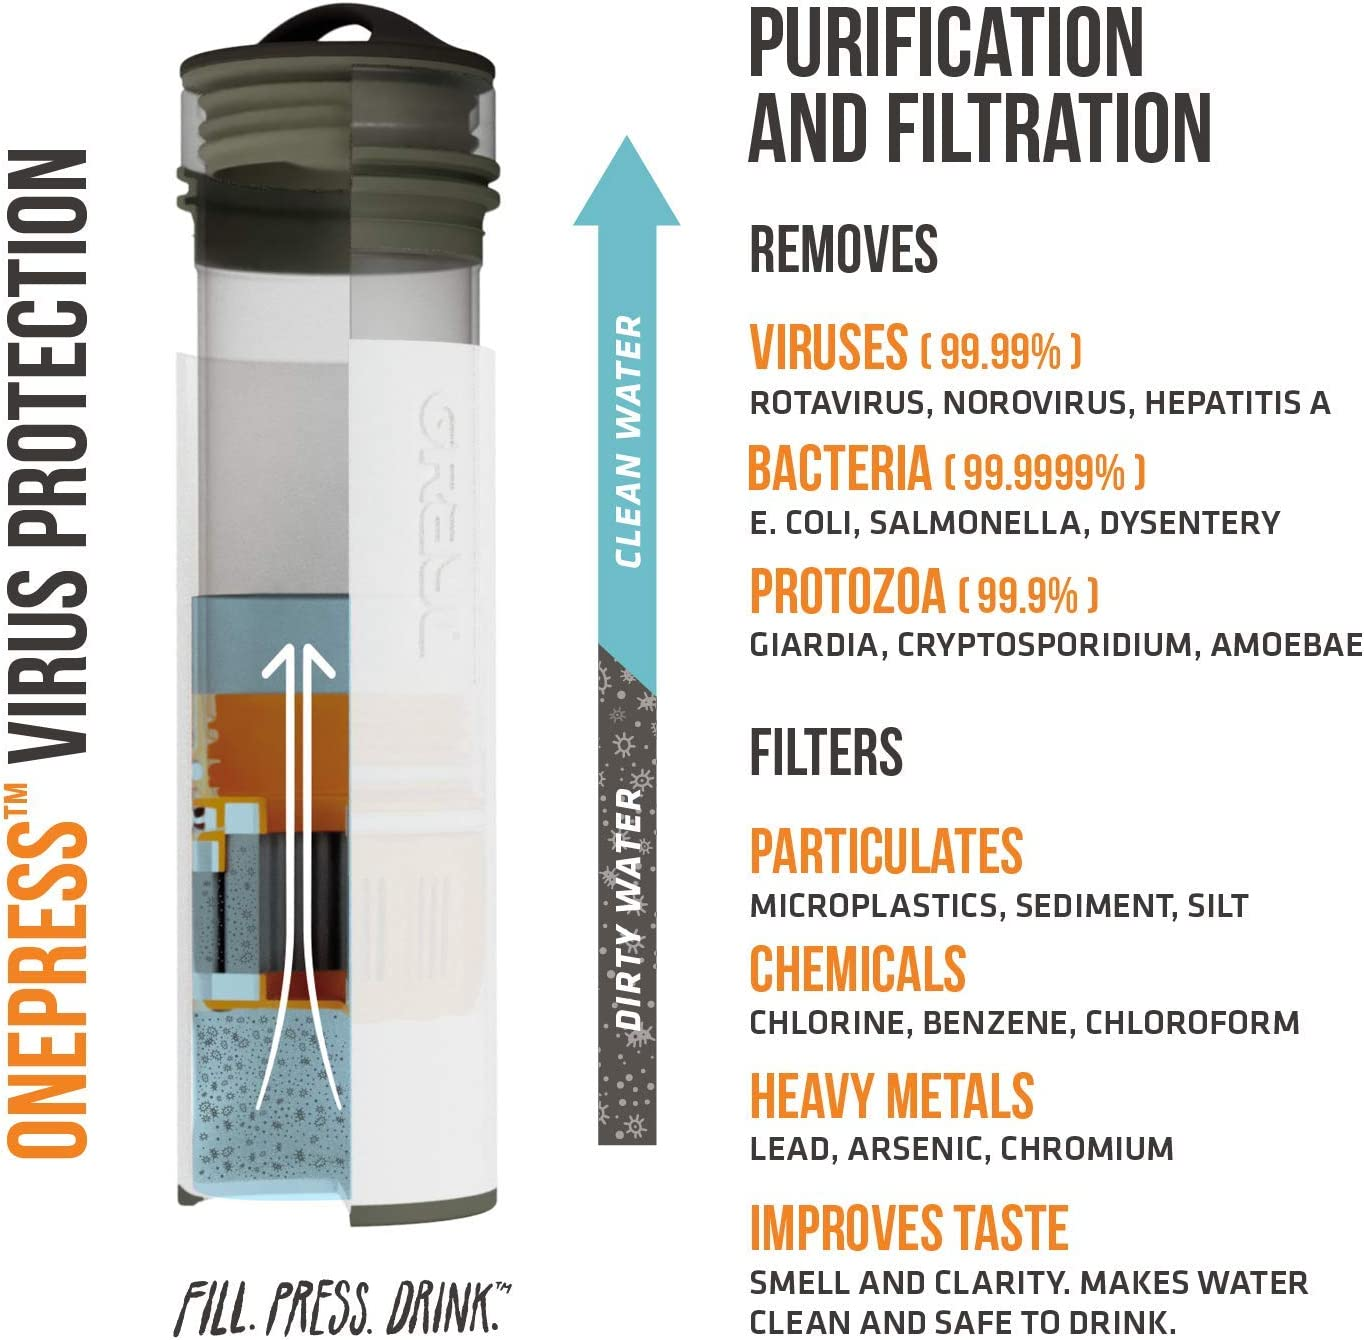 GRAYL Purification and filtration